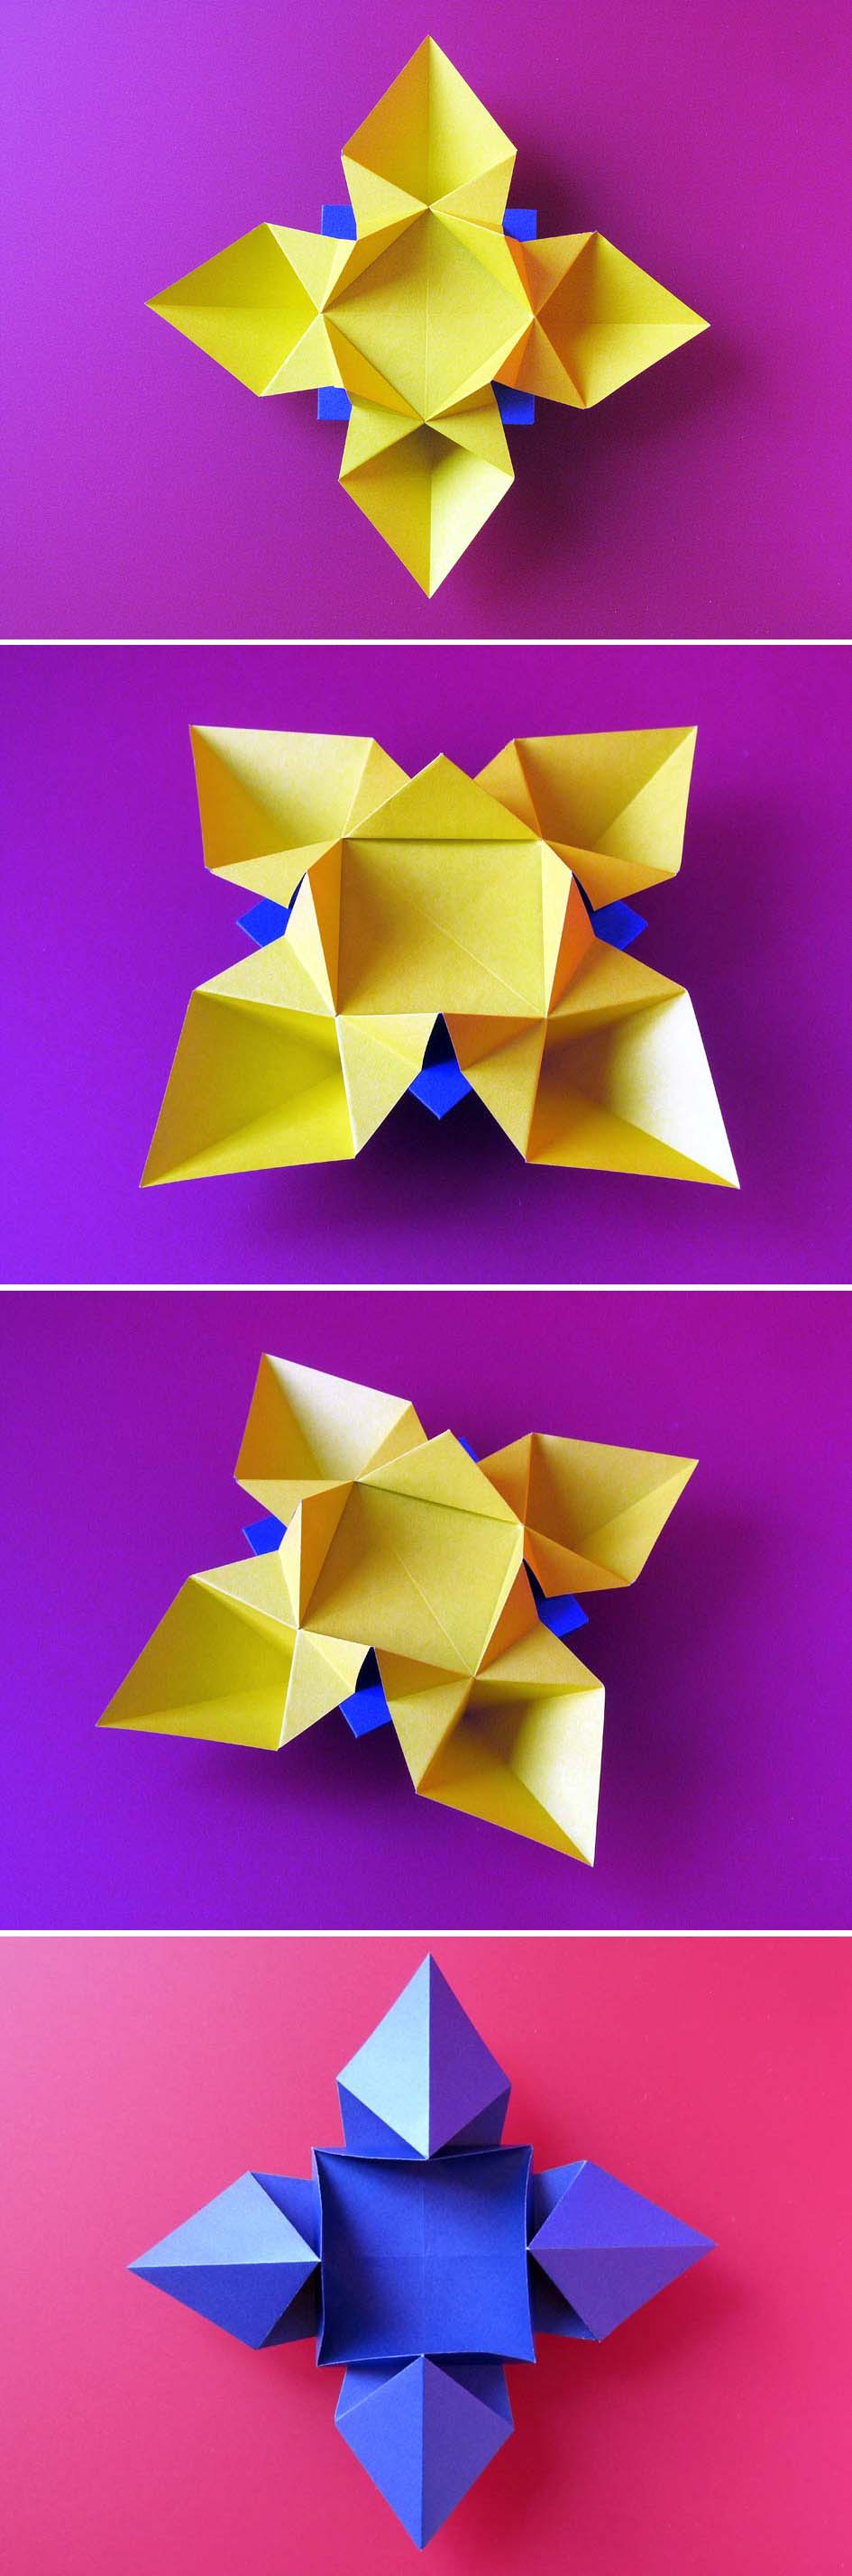 Simple Origami Link Diagrams Fiore O Stella Flower Or Star By Flowers Francesco Guarnieri To The